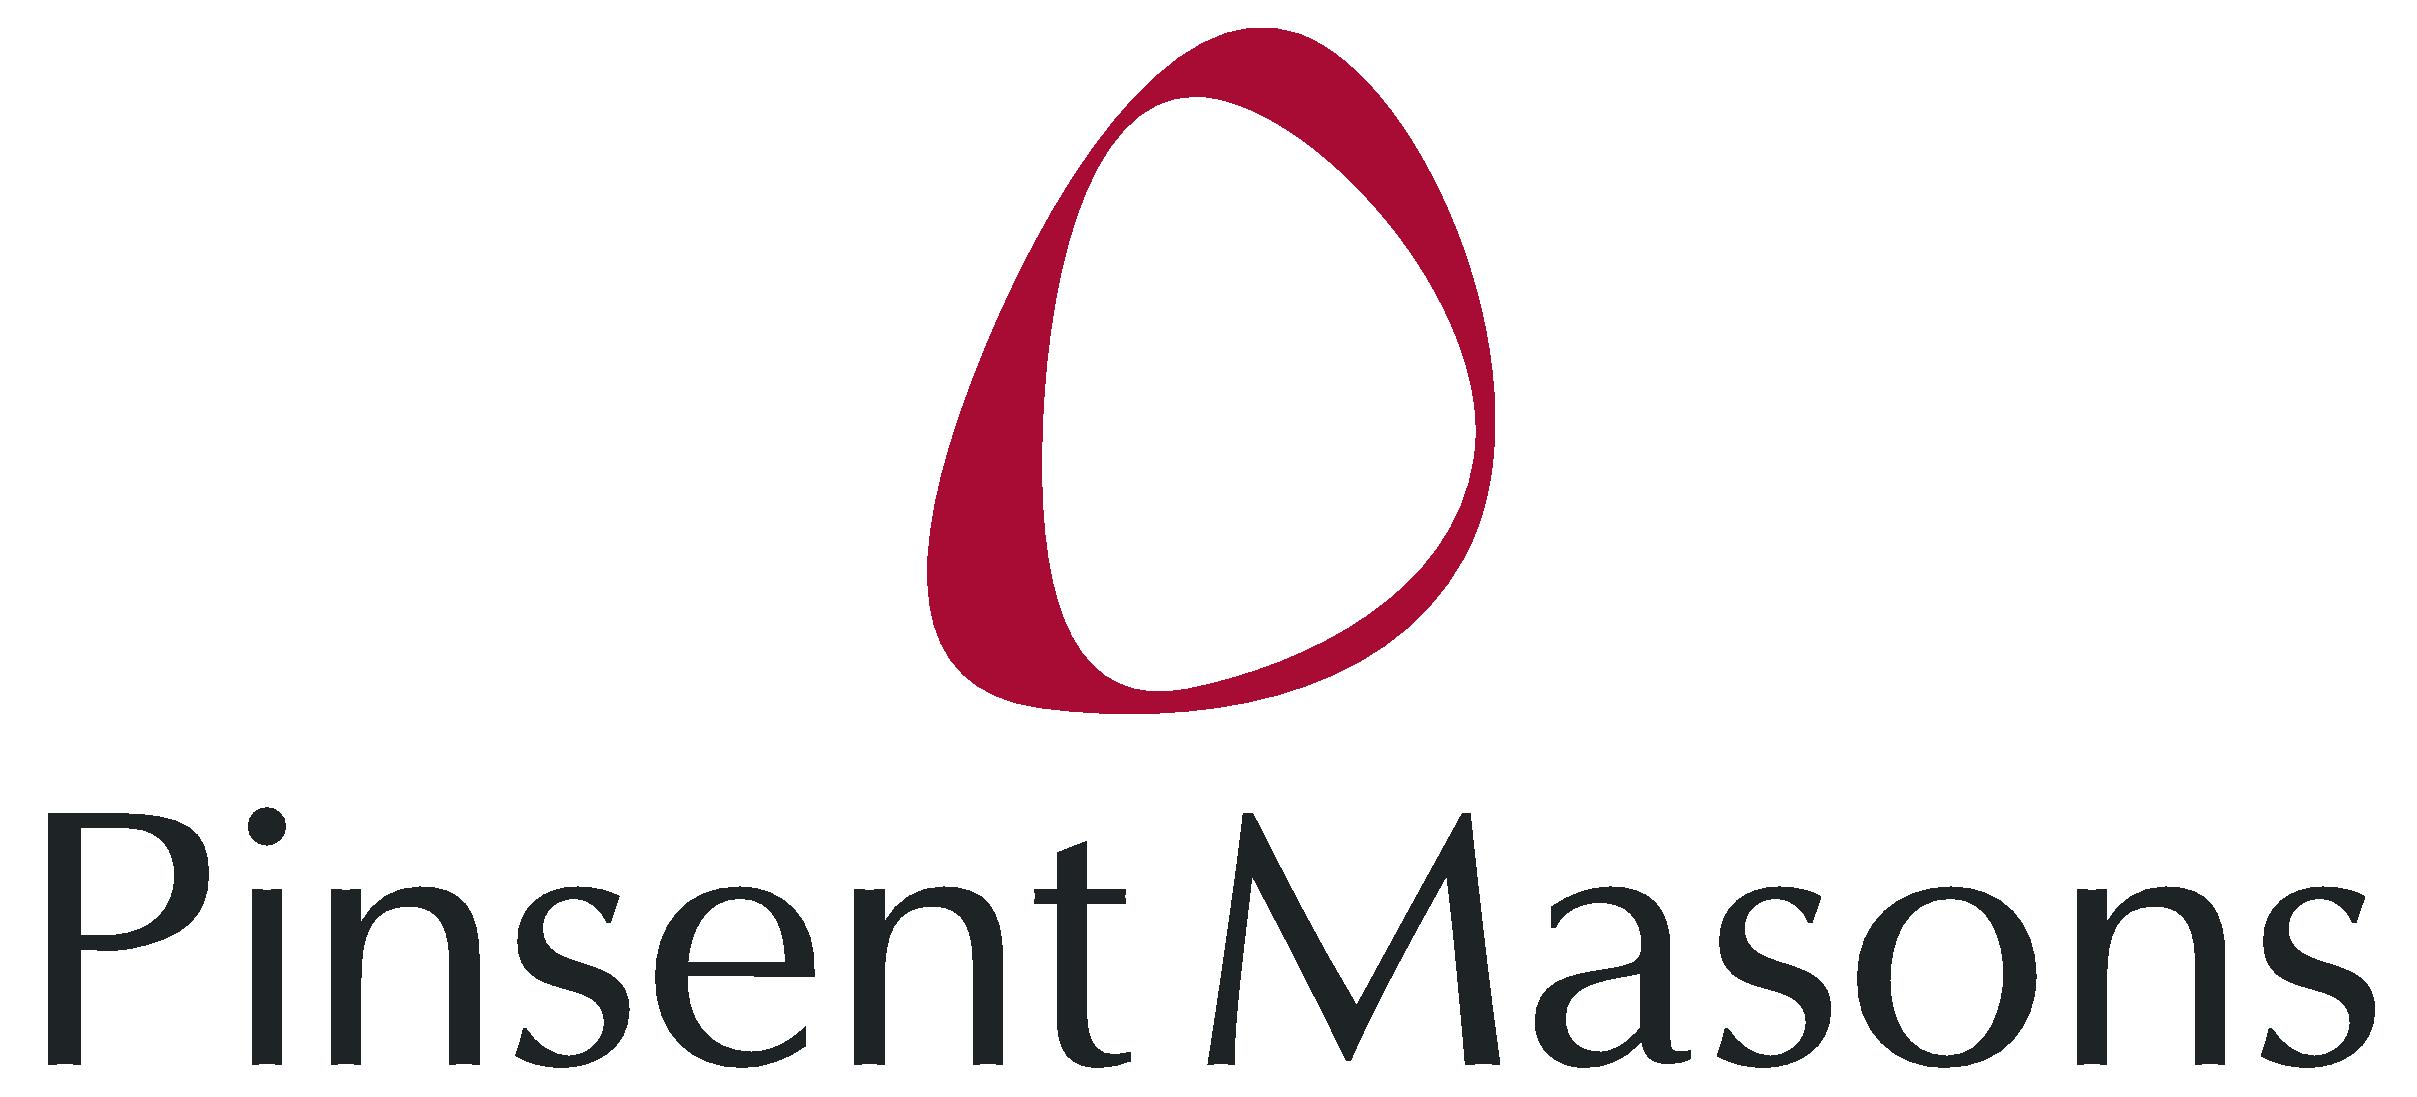 /legal-diversity-and-inclusion-directory/pinsent-masons/